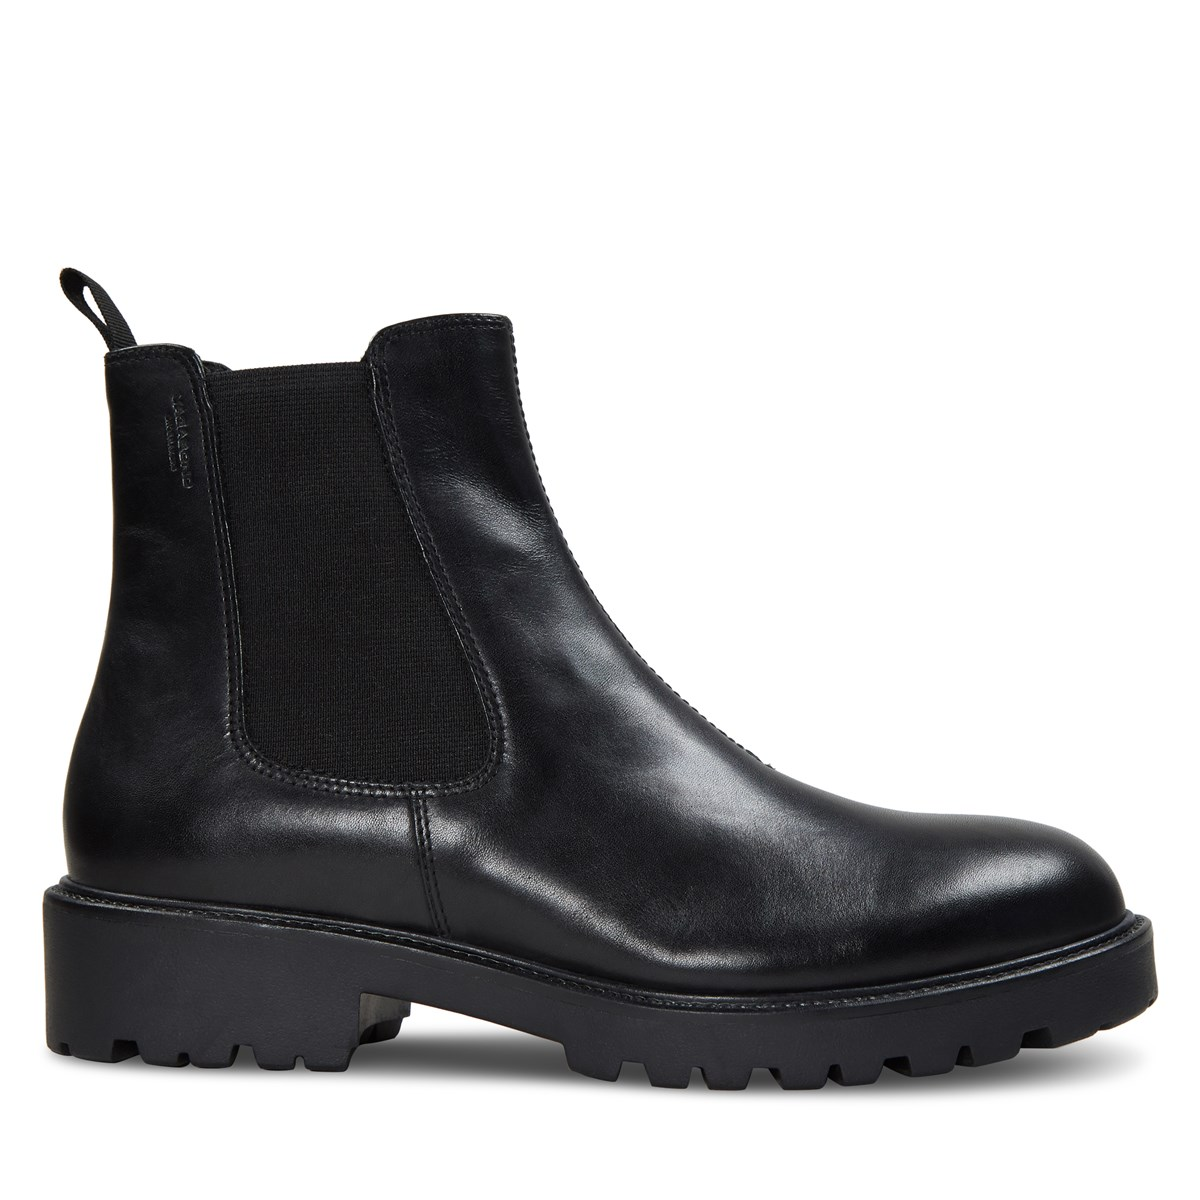 Women's Kenova Chelsea Boots in Black